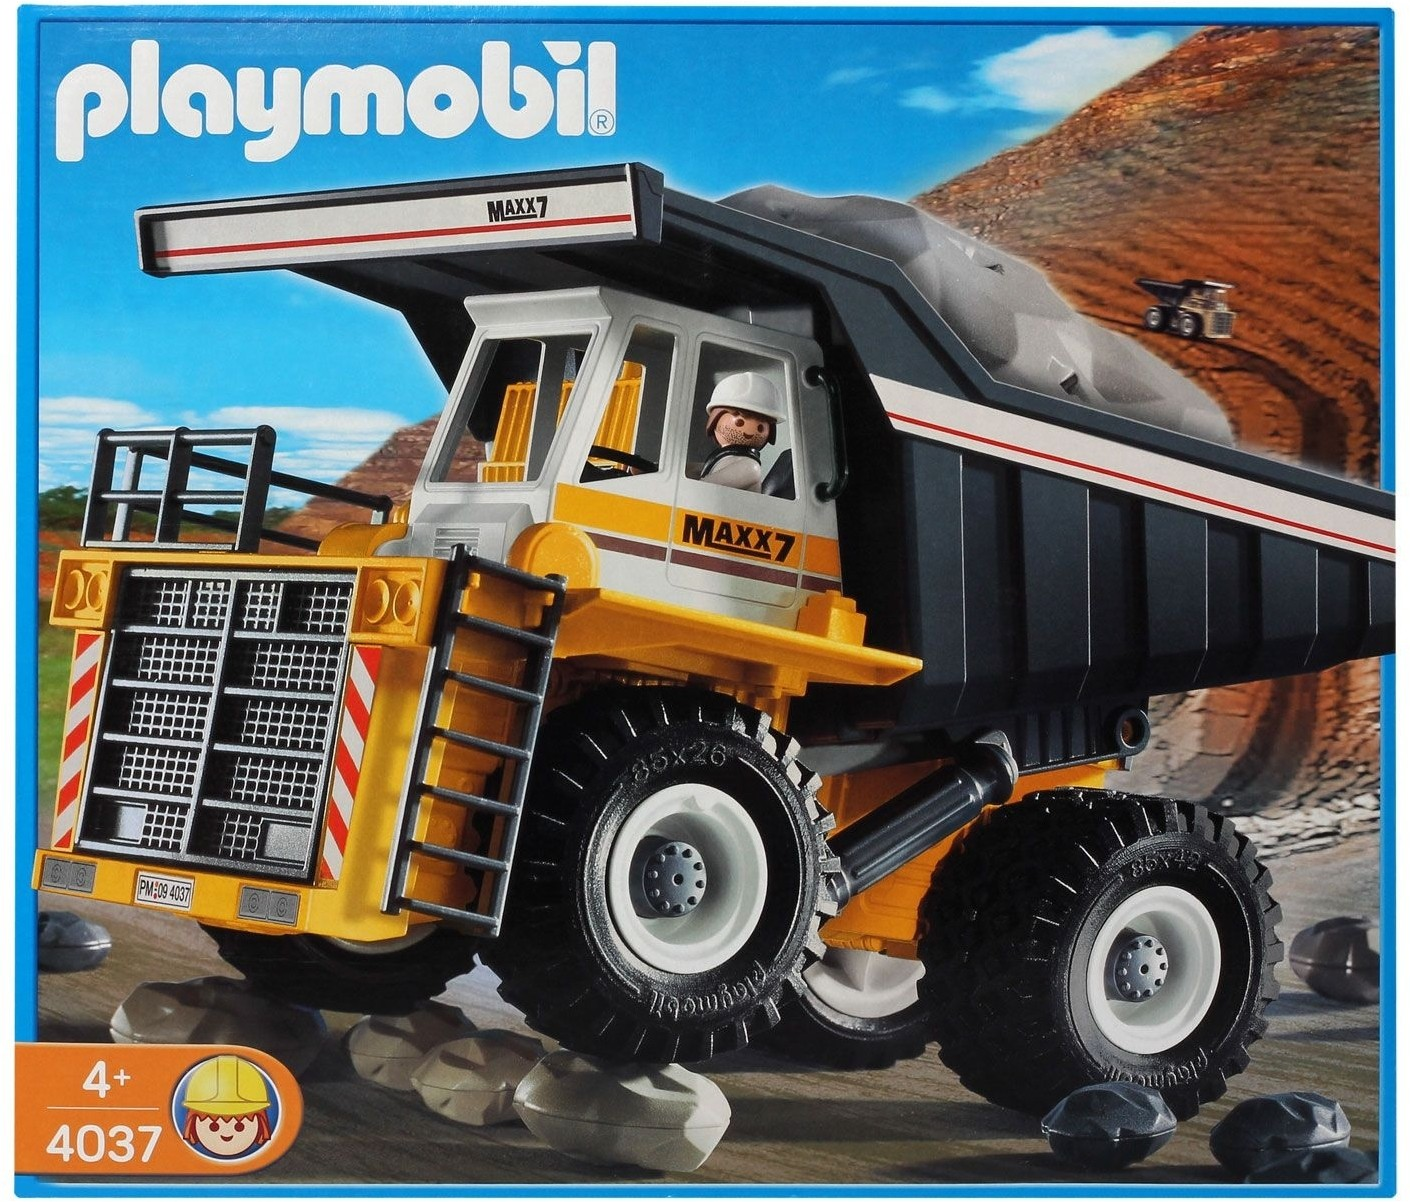 playmobil price list in india buy playmobil online at best price in india. Black Bedroom Furniture Sets. Home Design Ideas